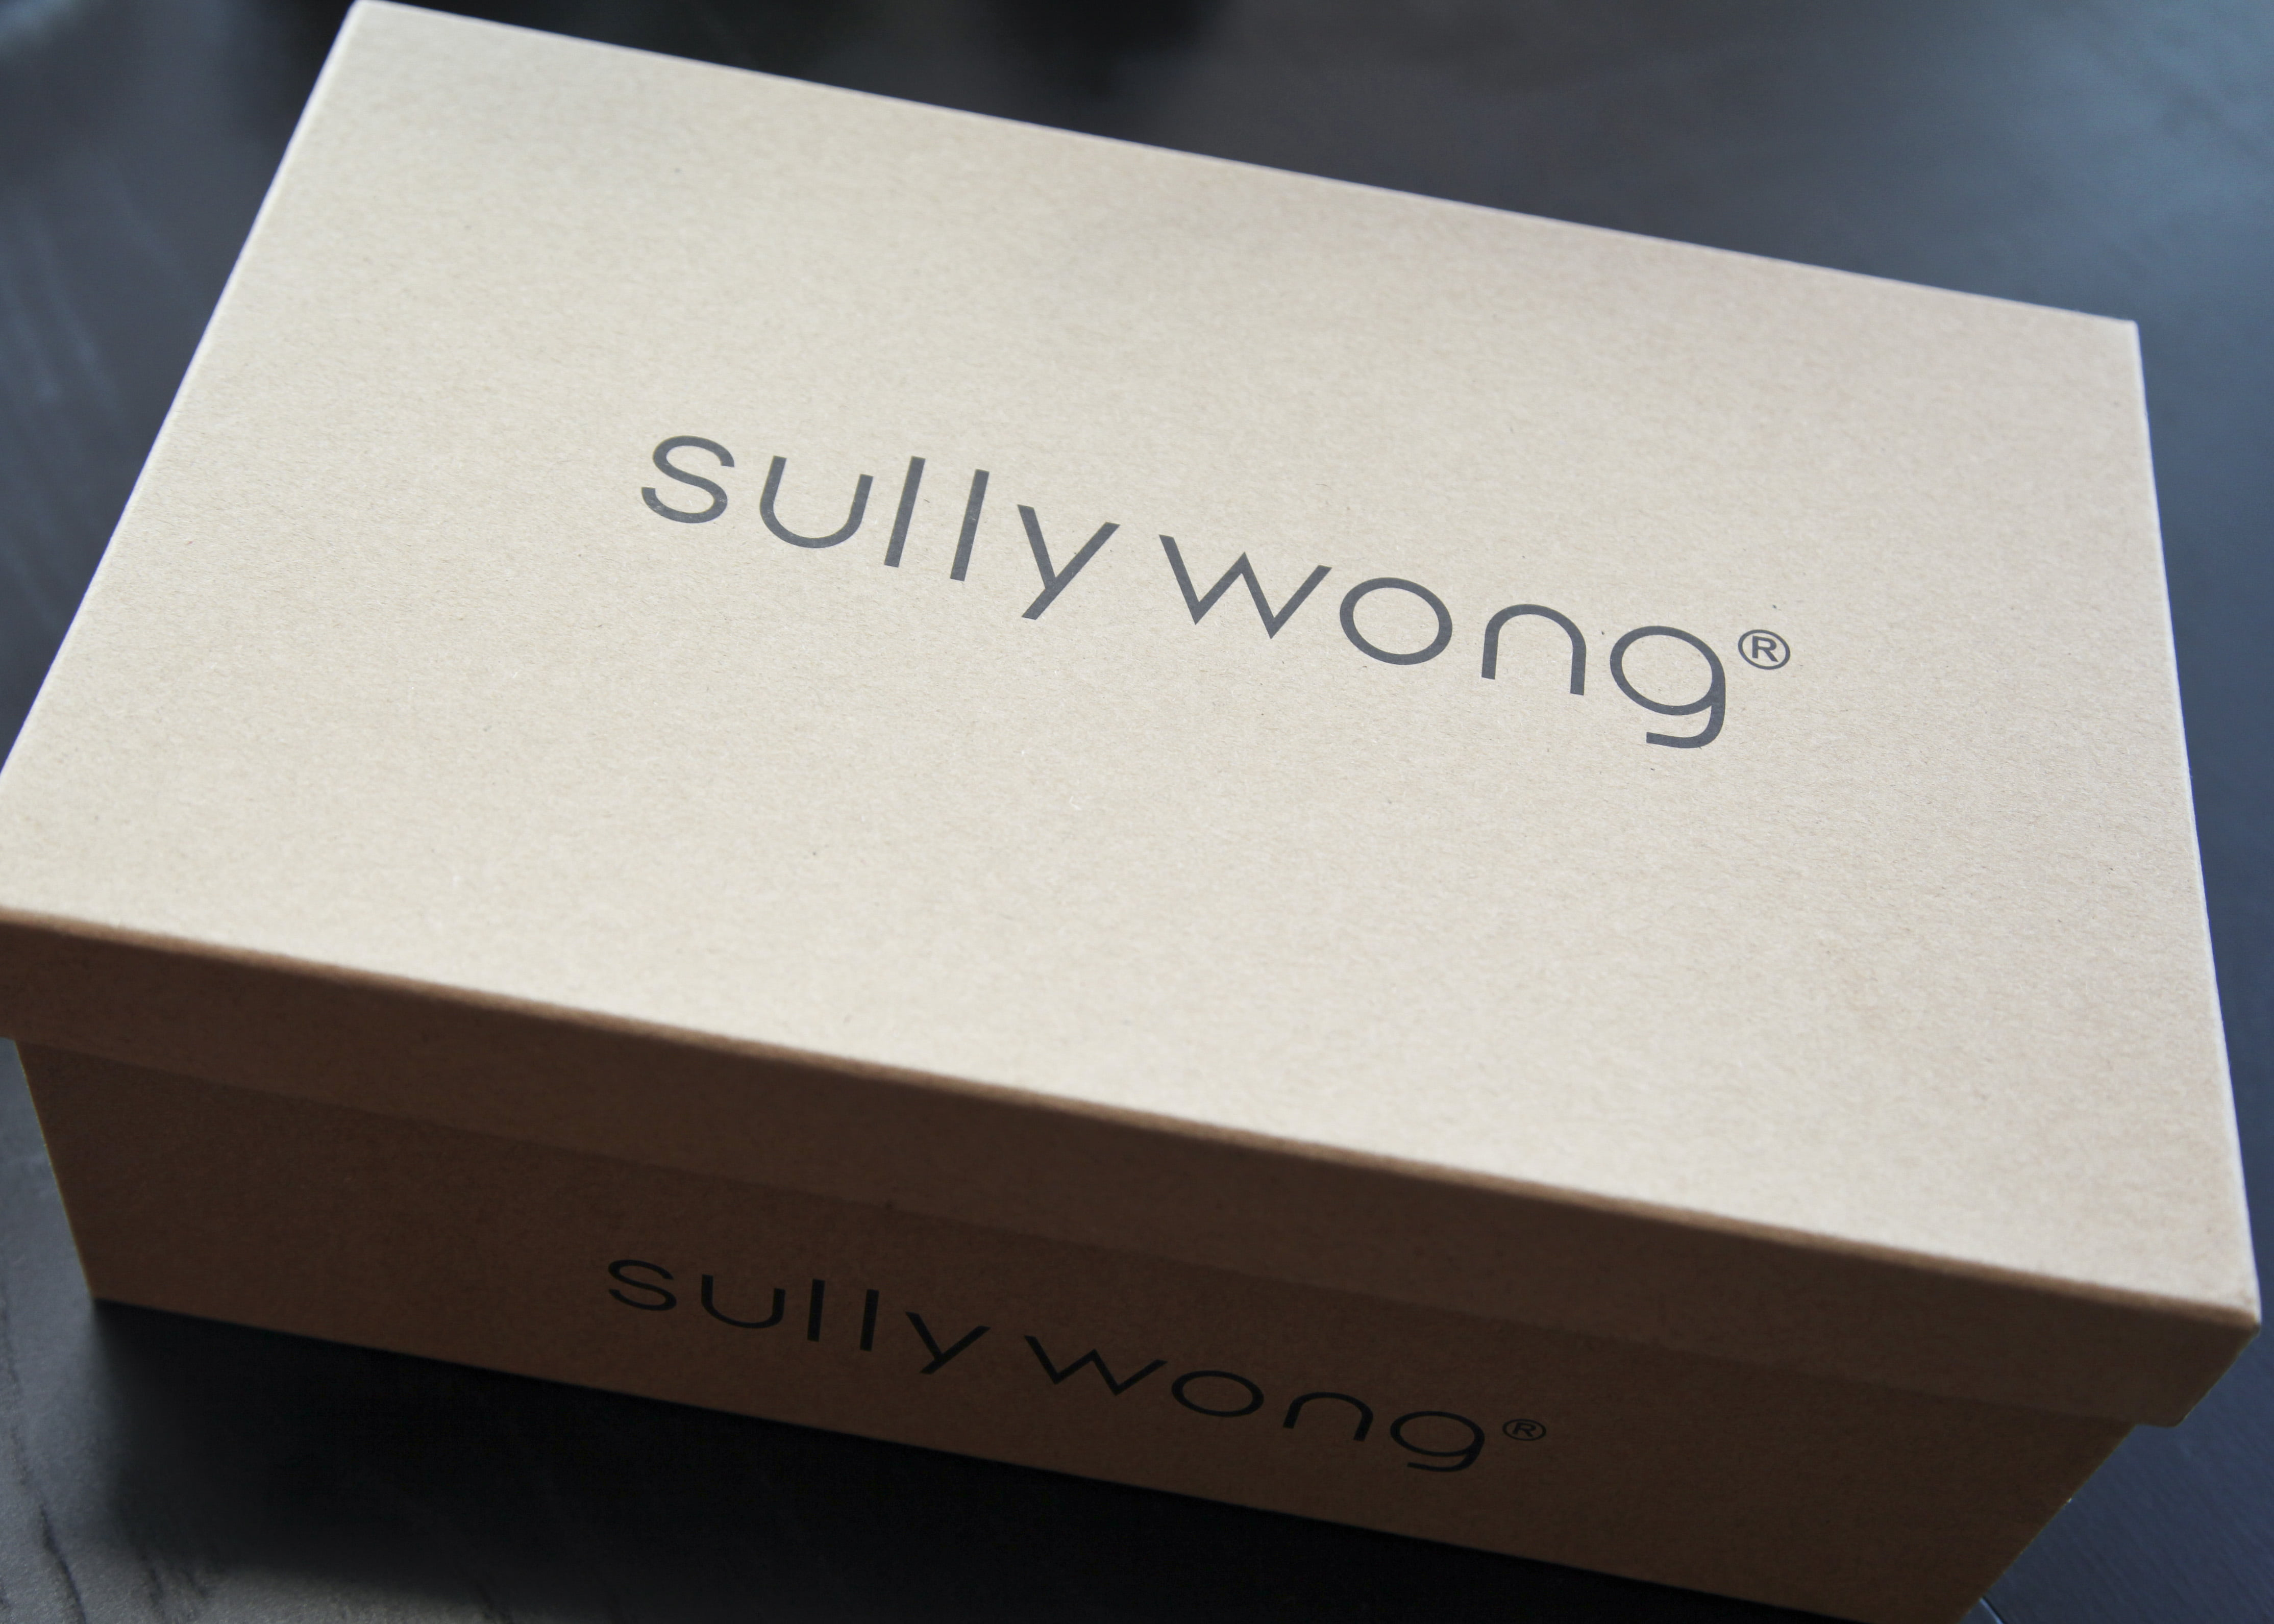 Sully Wong sneaker box